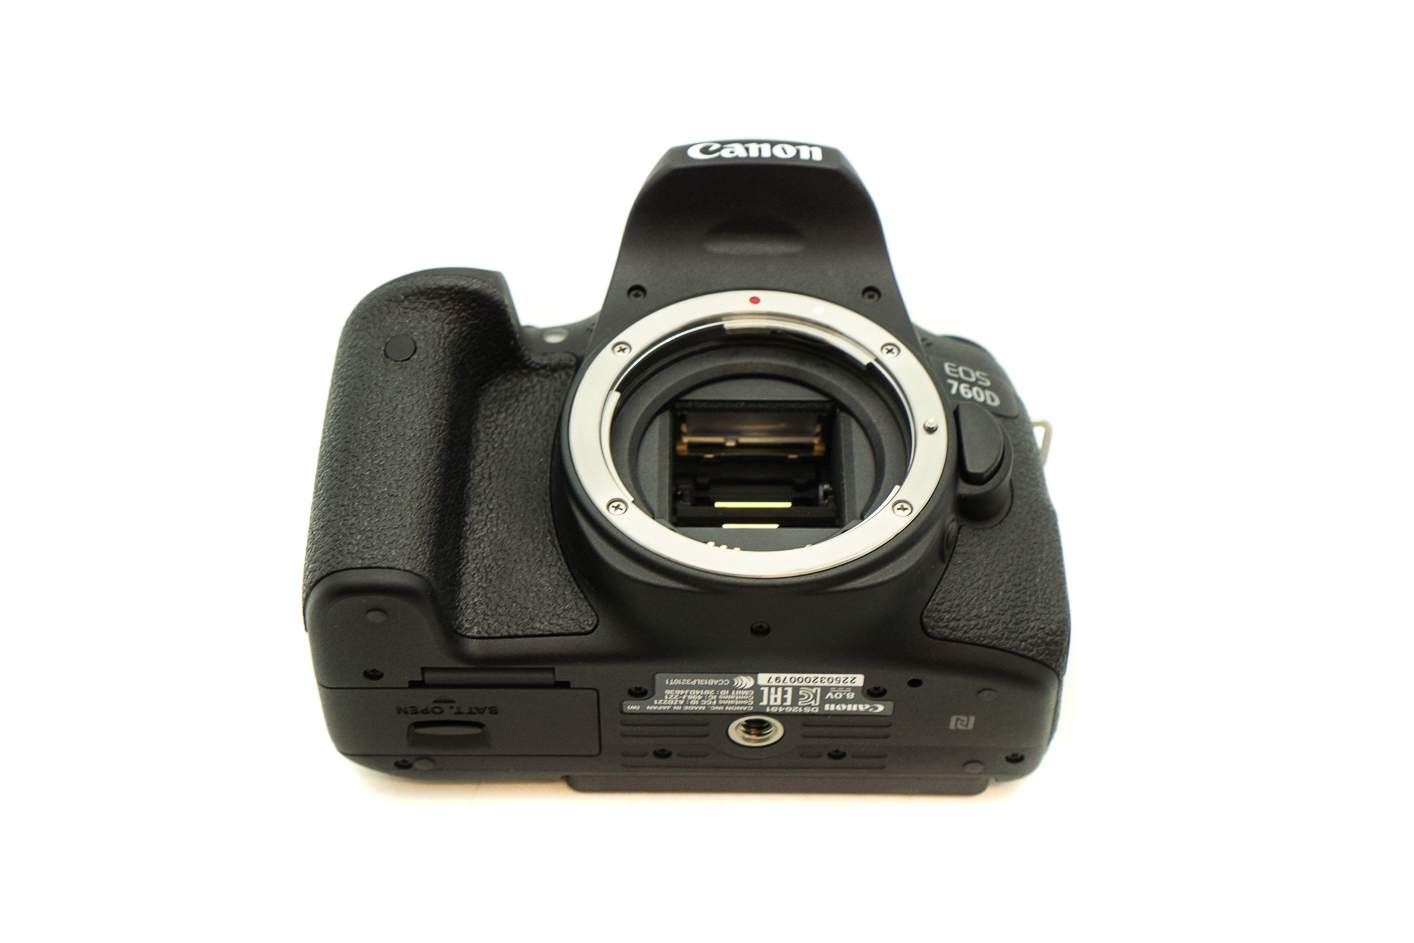 Canon Eos 760d Body Only Rent From 30 Month Wifi Next